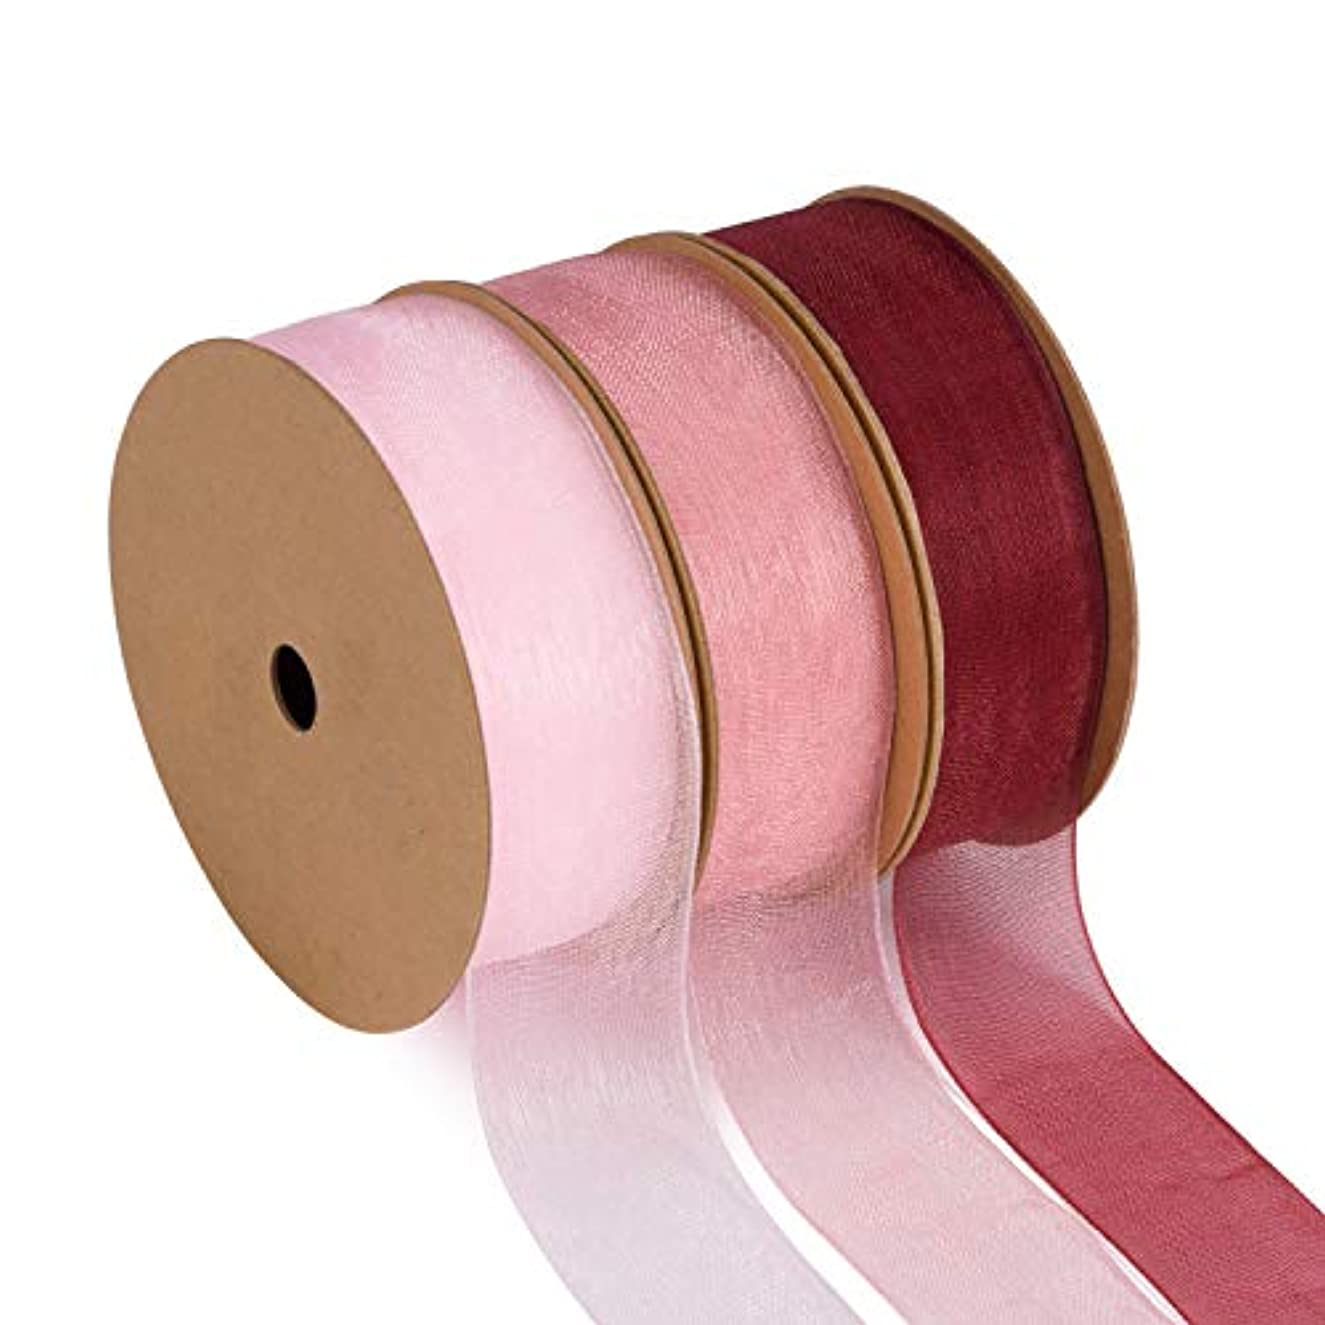 LaRibbons 3 Pack Sheer Organza Ribbon - 1''X 25 Yard Each Roll, 3 Rolls (Burgundy + Rose + Light Pink) Ribbons for Wedding Decor, Bouquets, Gift Wrapping